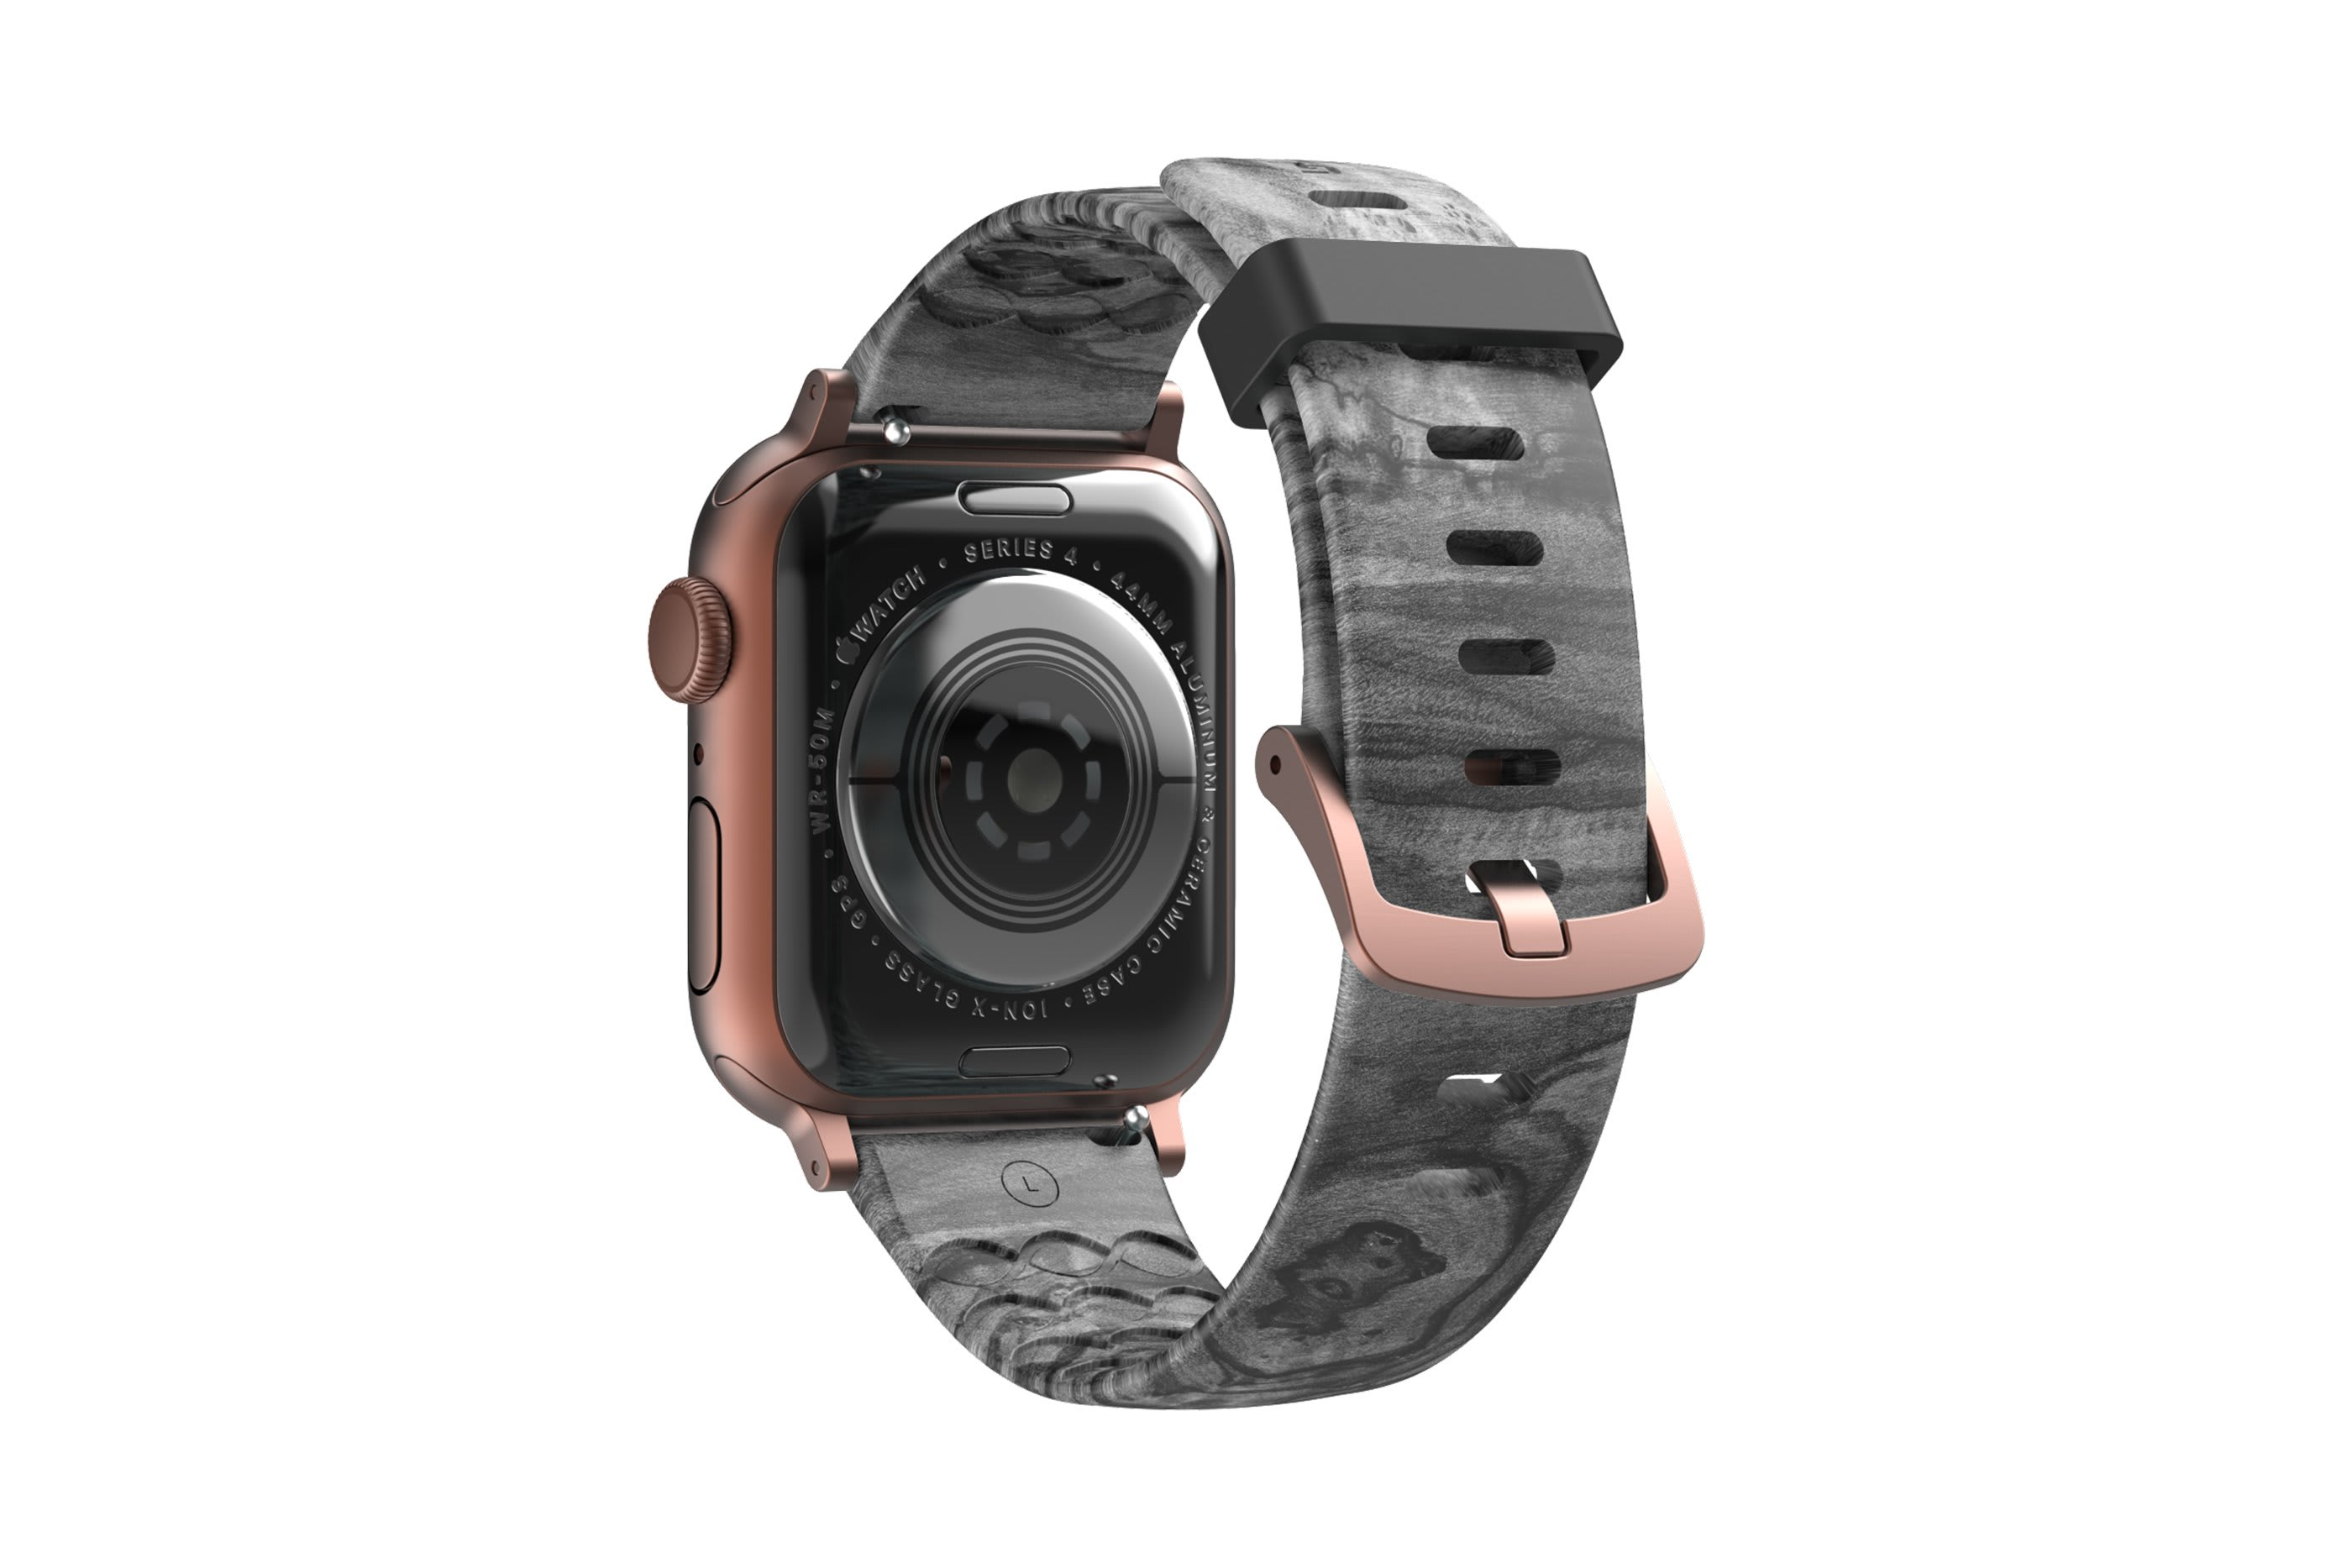 Nomad Relic Apple Watch band with rose gold hardware viewed from rear